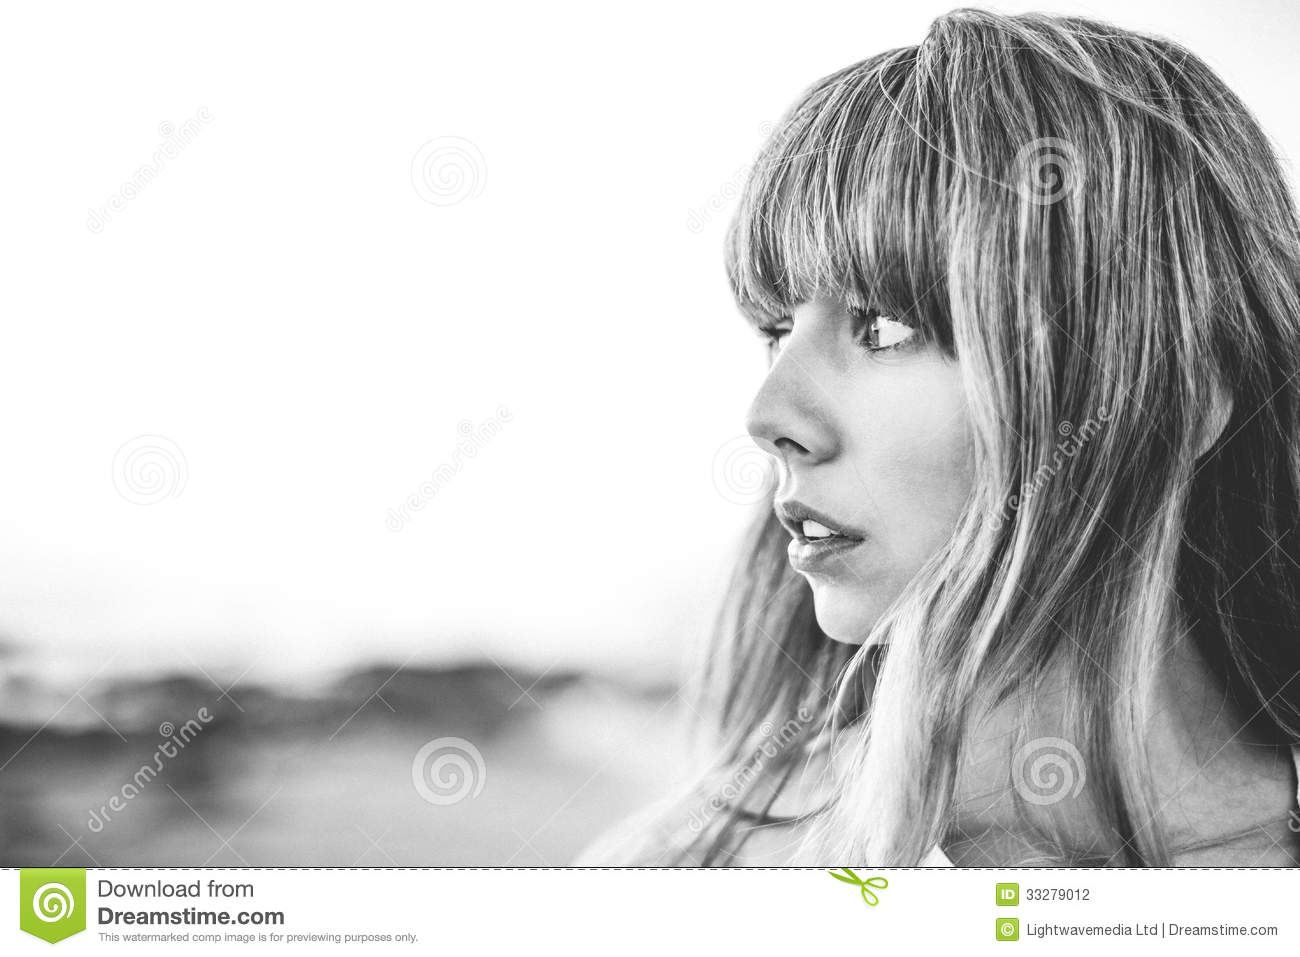 Hipster Girl With Fringe Looking Away Stock Photo - Image -8065